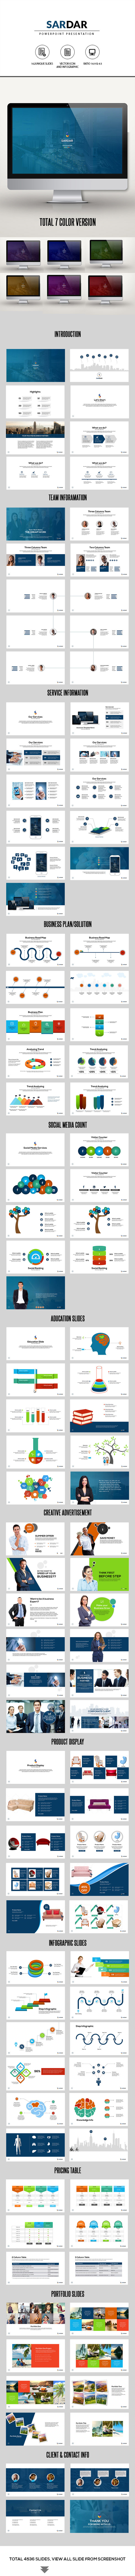 GraphicRiver SARDAR Corporate Powerpoint Template 11337074